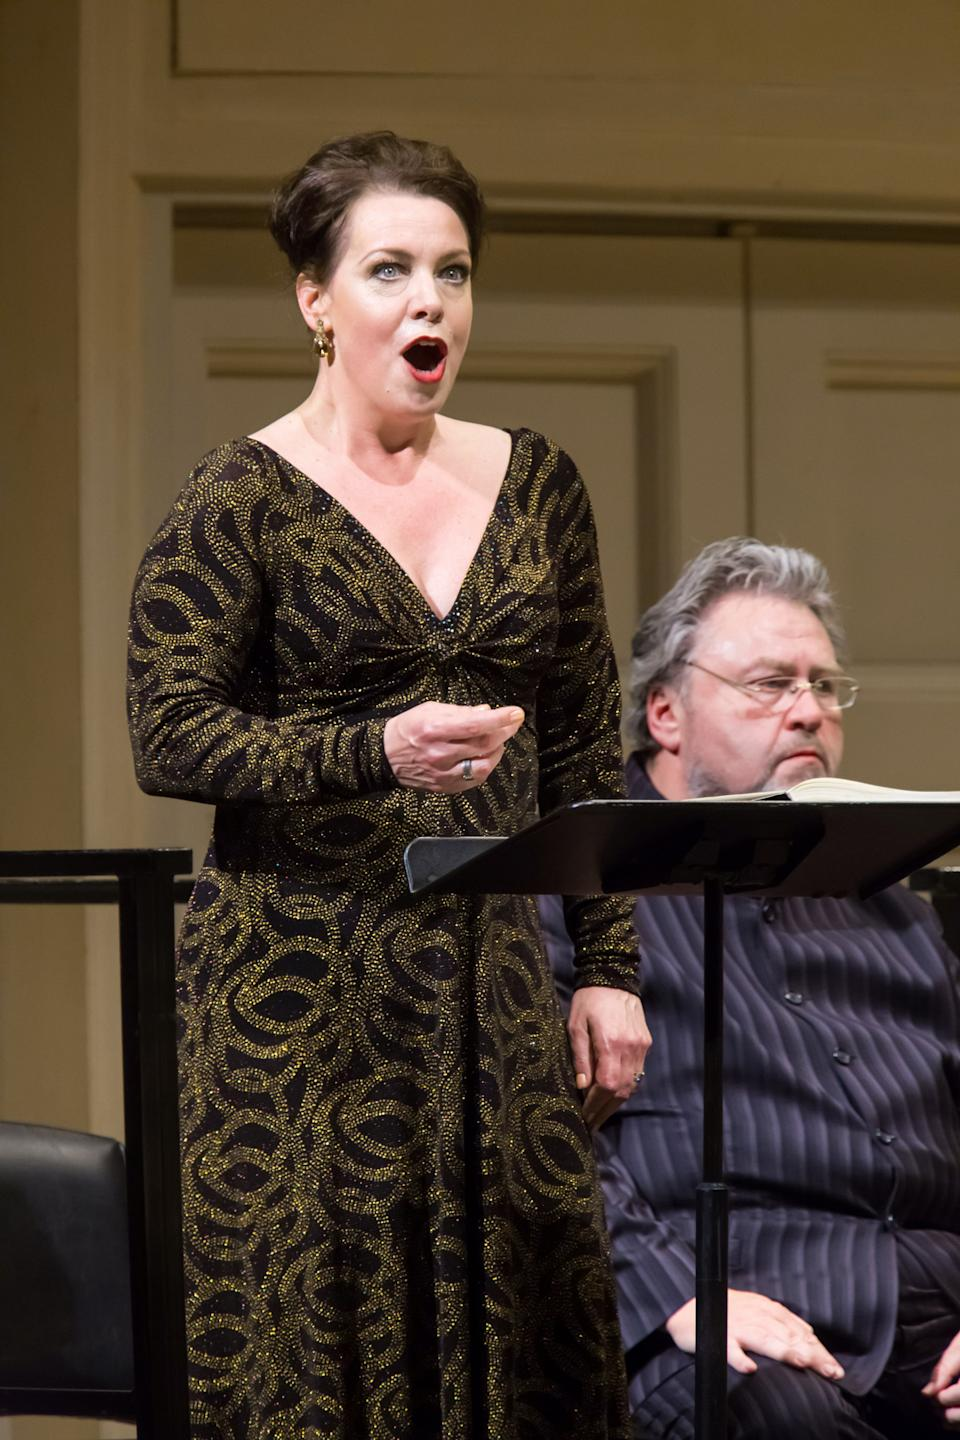 In this May 24, 2012, provided by Carnegie Hall, Swedish soprano Nina Stemme sings in the title role of Salome with the Cleveland Orchestra at Carnegie Hall in New York. (AP Photo/Carnegie Hall, Chris Lee)